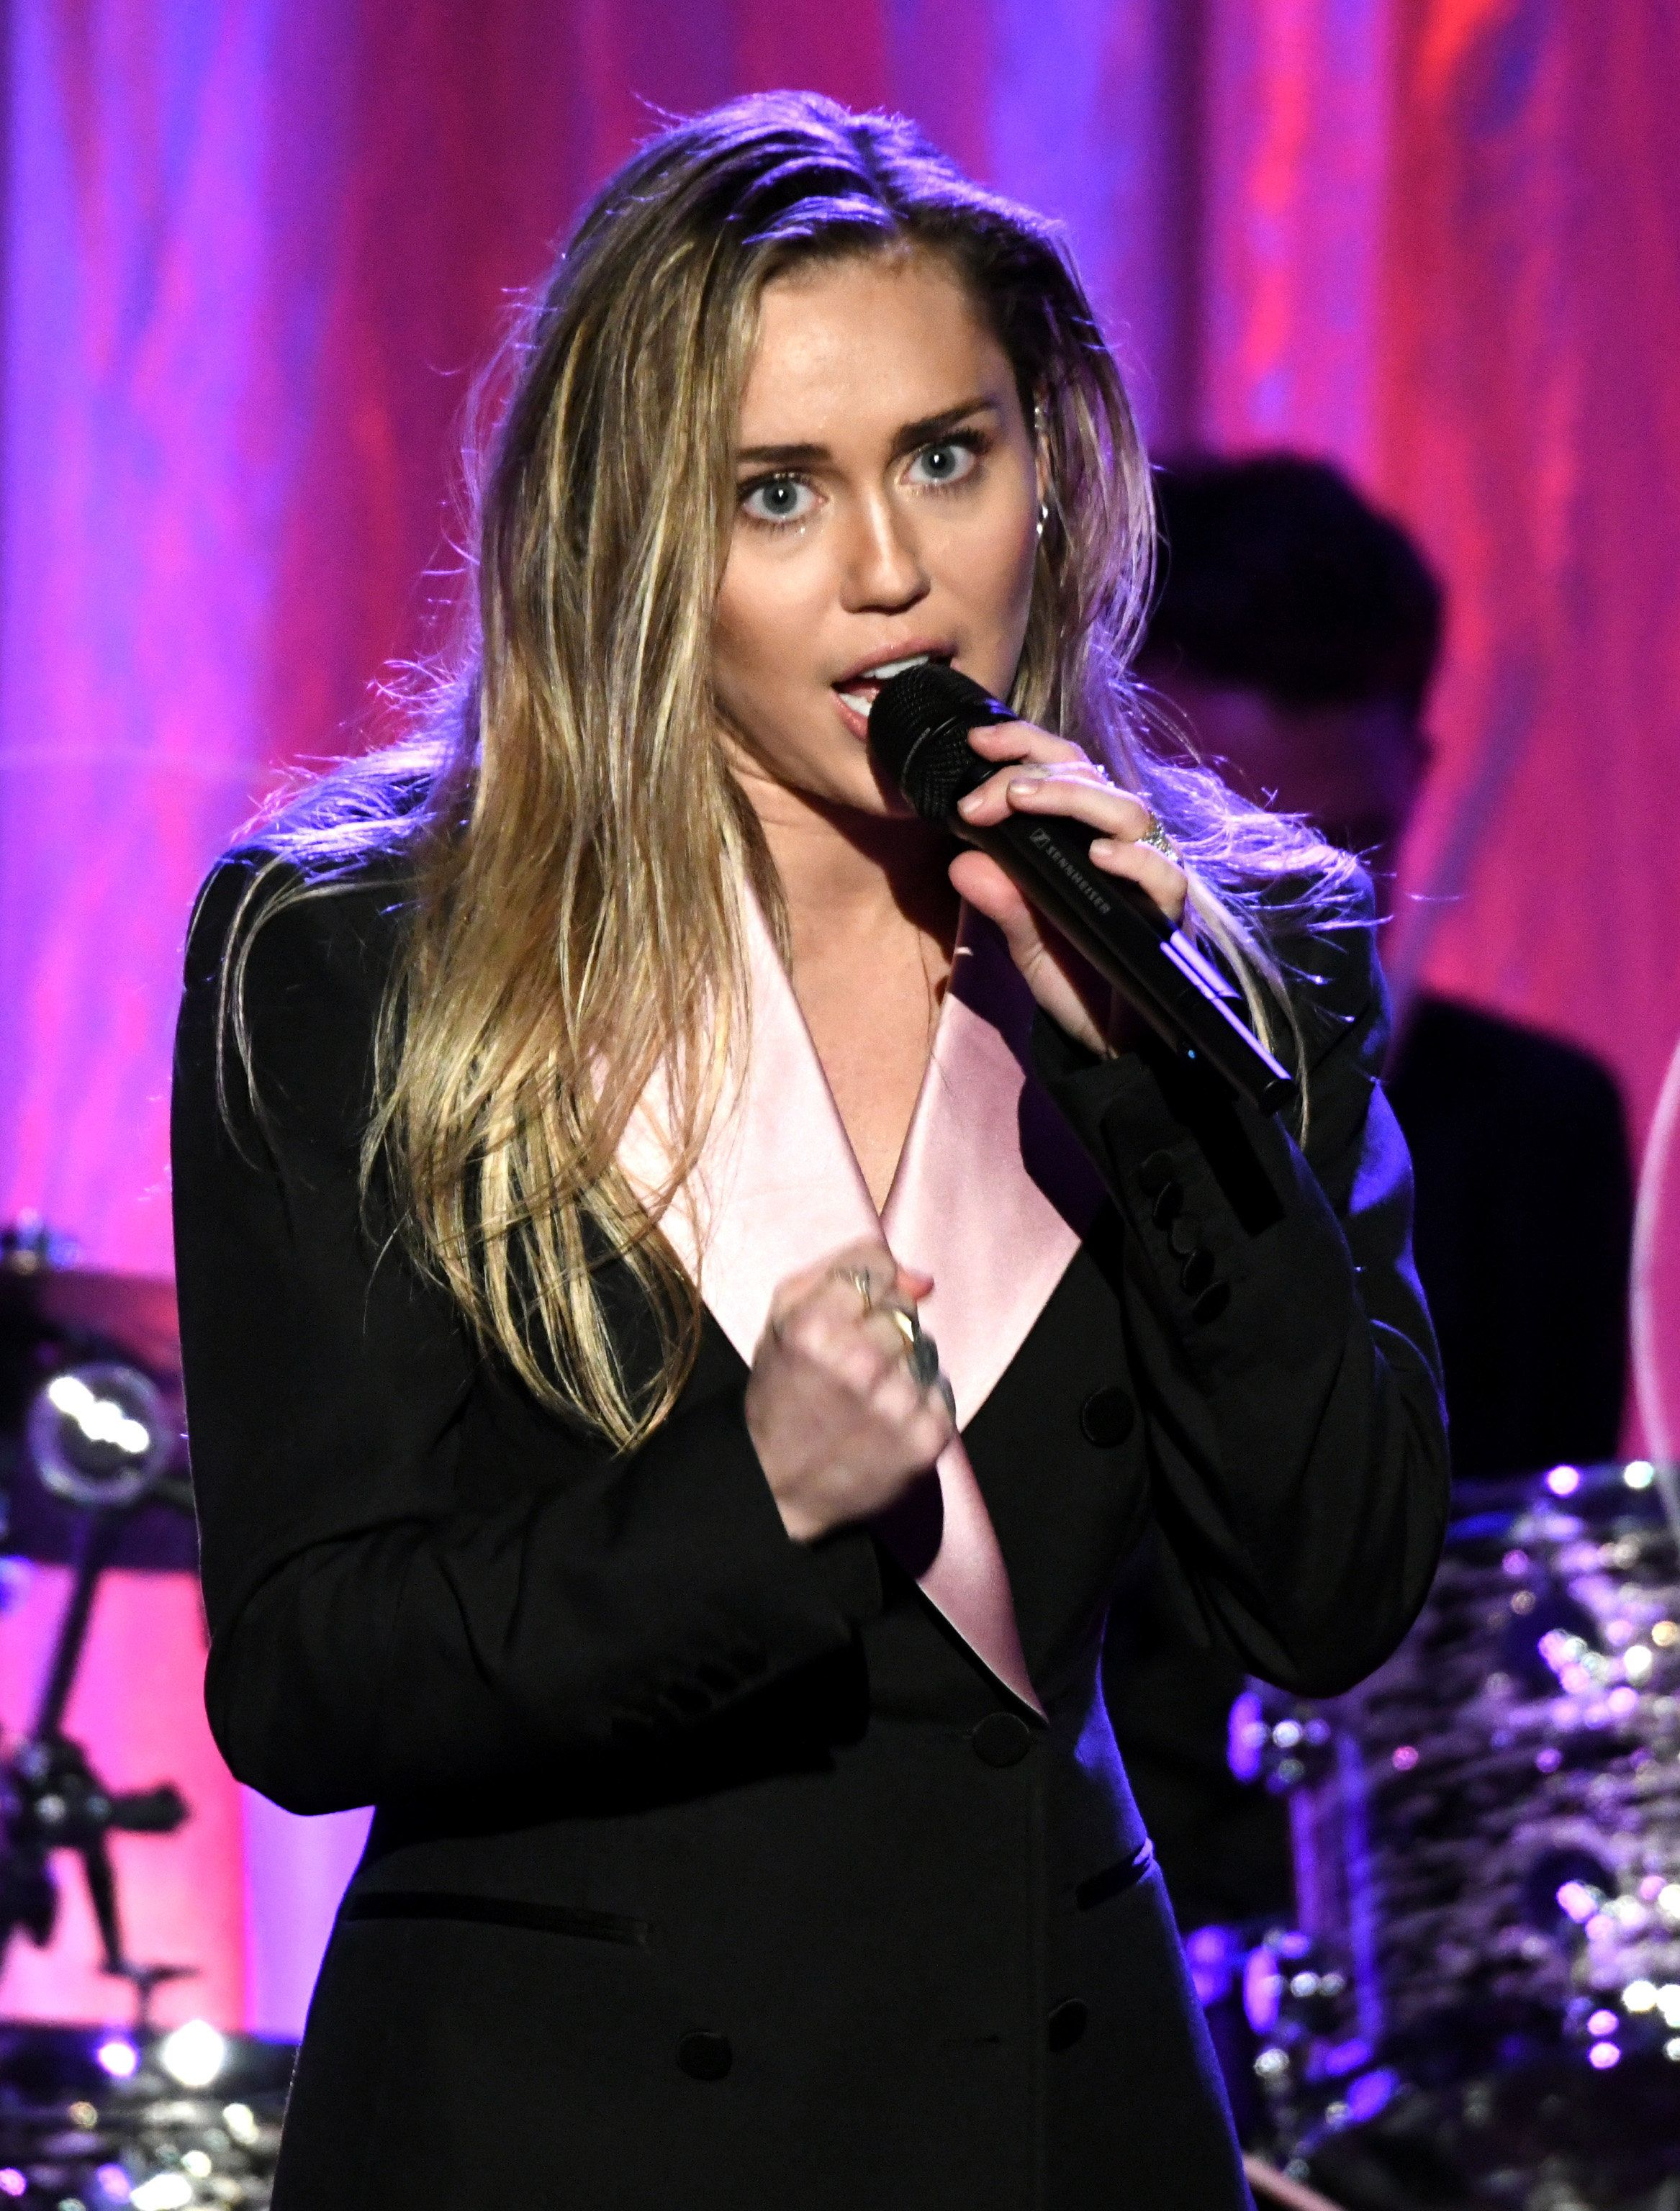 BEVERLY HILLS, CA - FEBRUARY 28:  Miley Cyrus performs onstage during WCRF's 'An Unforgettable Evening' at the Beverly Wilshire Four Seasons Hotel on February 28, 2019 in Beverly Hills, California.  (Photo by Michael Kovac/Getty Images for WCRF)